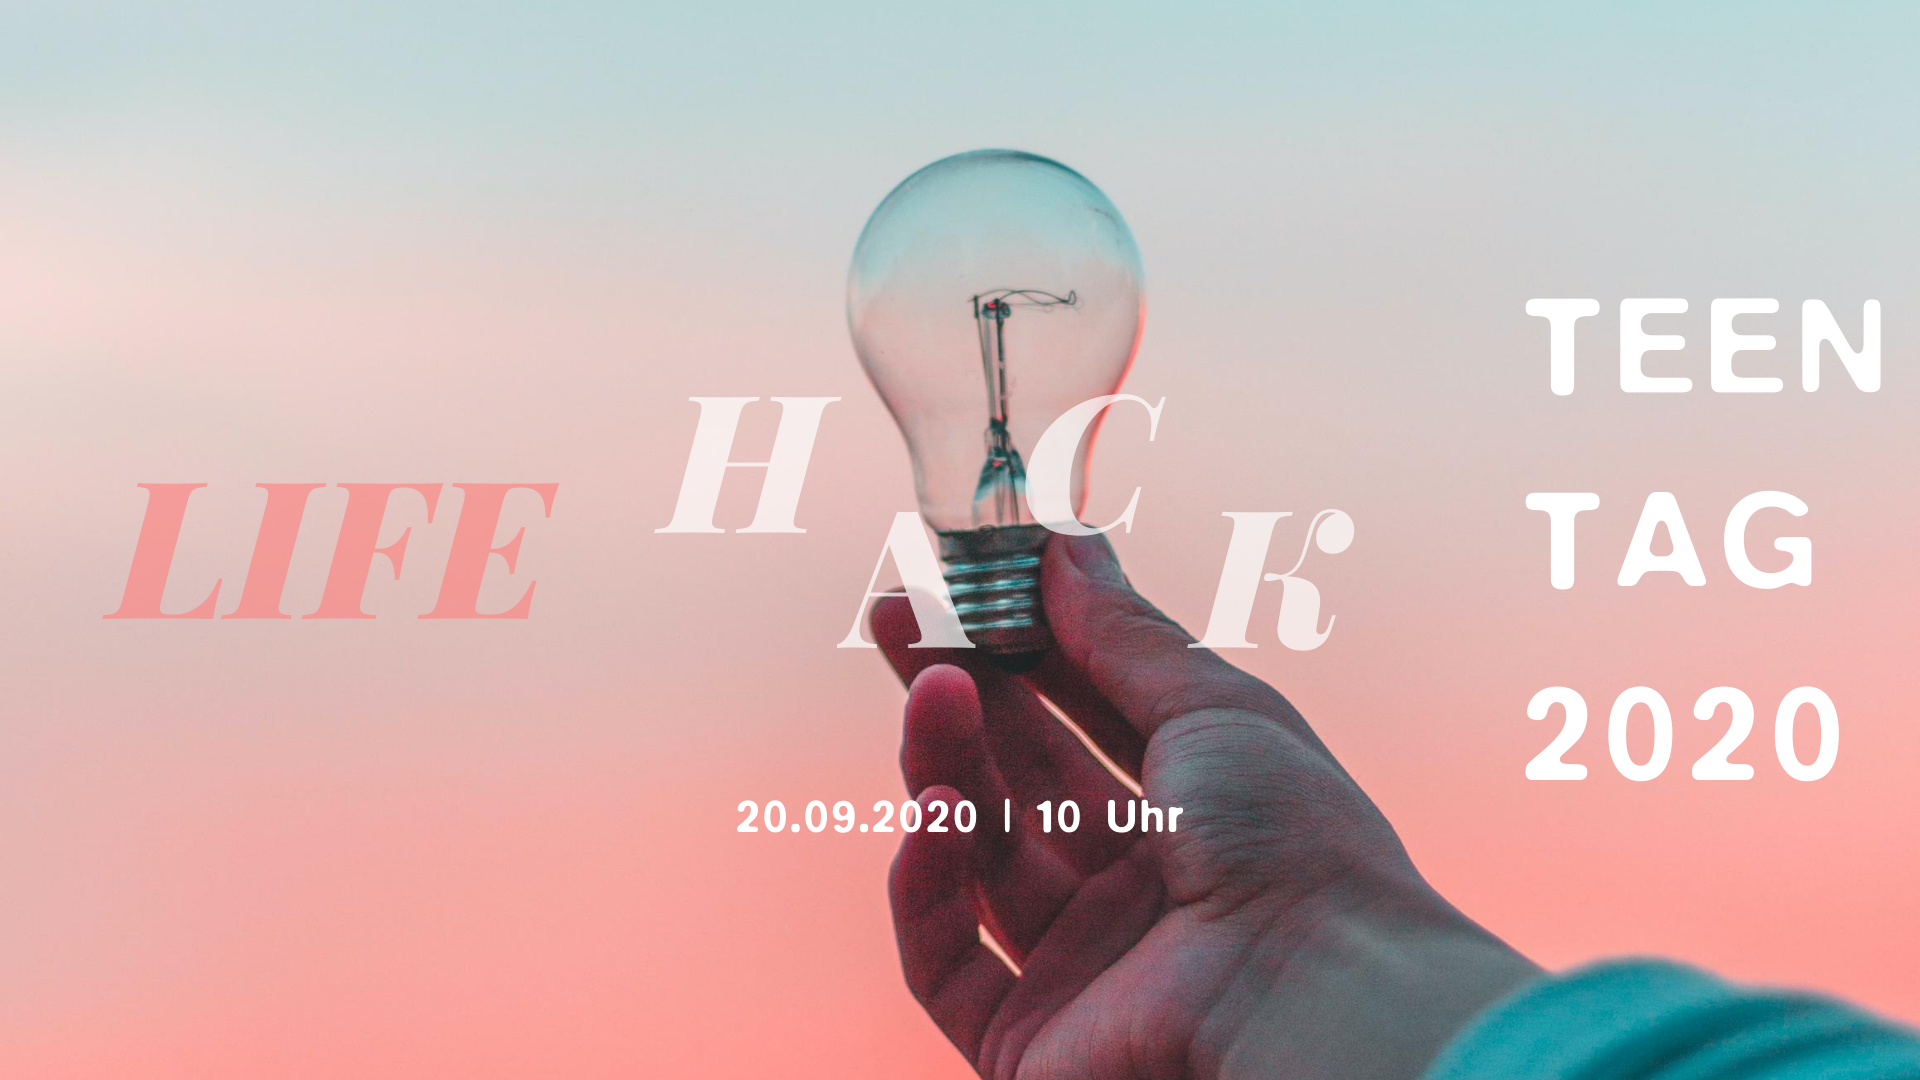 Teentag 2020 – Lifehack!